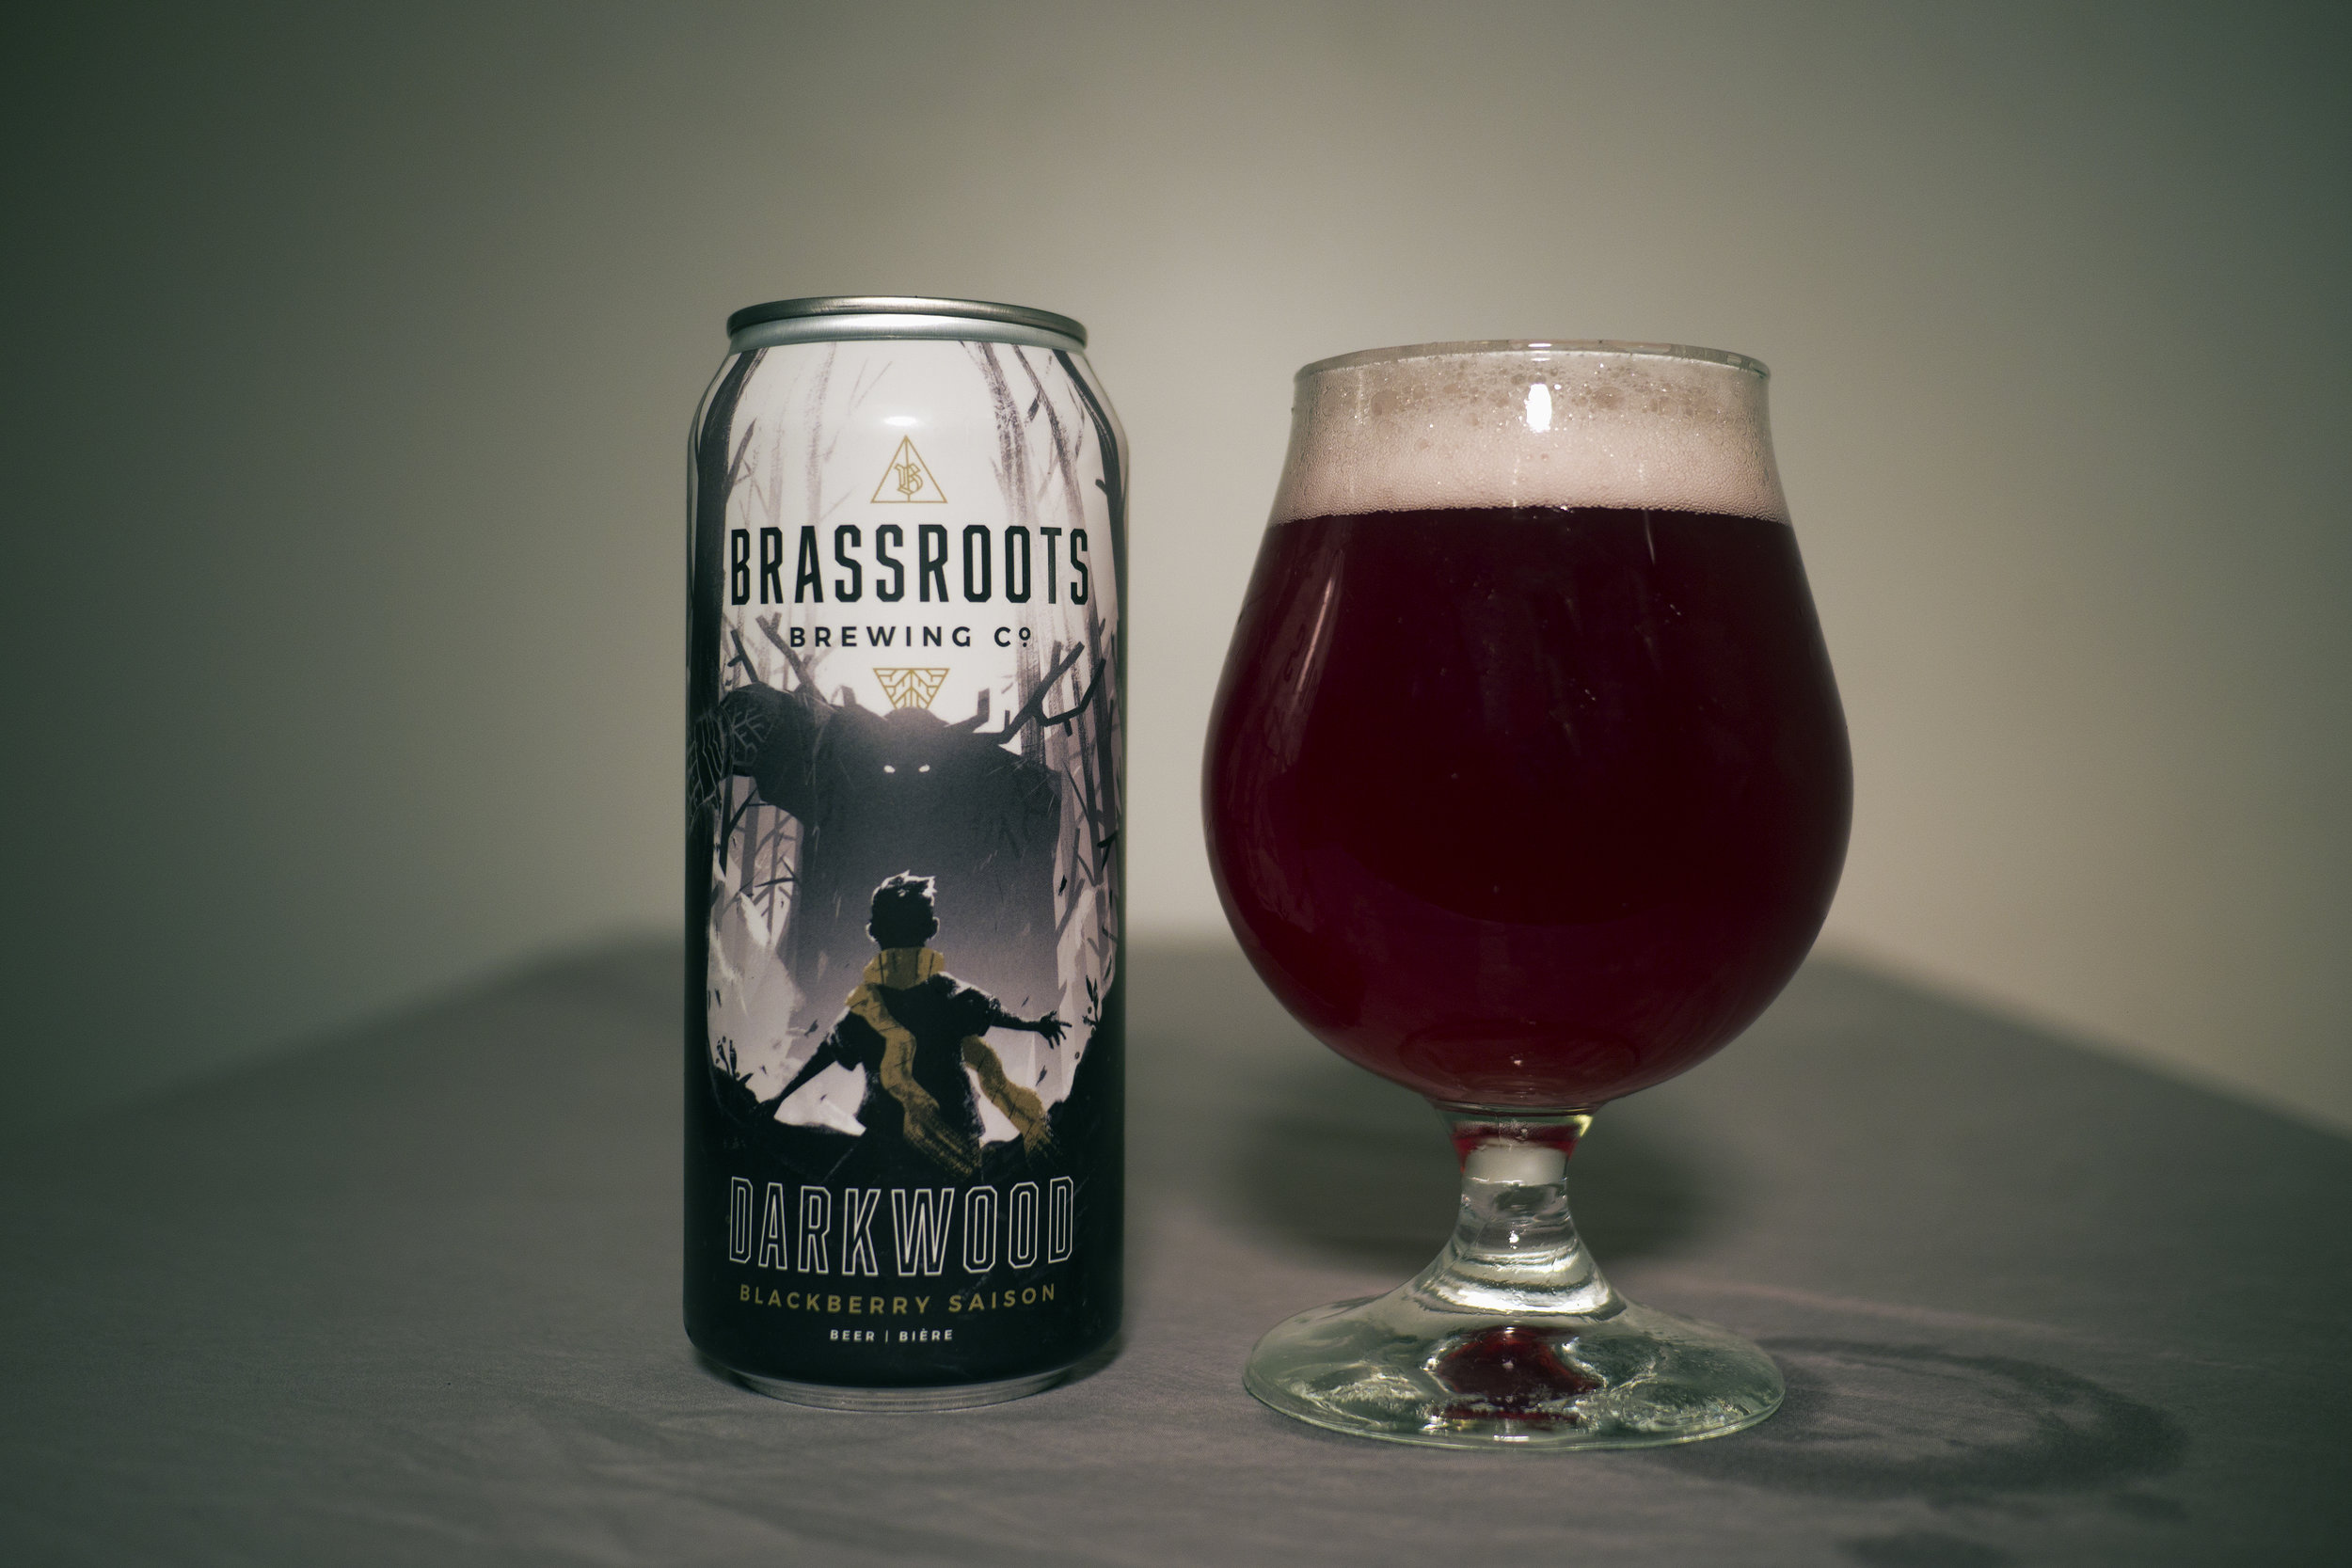 Darkwood Blackberry Saison The first of many beers that's dedicated to adding something new to the Ontario craft beer network.Darkwood has the characteristics of a classic Belgian Saison (fruity,spicy)with the addition of an understated fruited tartness.450 lbs. of blackberry puree,shipped in from Oregon, was added to this Saison.The blackberries give Darkwood a beautifully unique reddish hue and is rounded out by a mild aromatic bitterness imparted by three citrus forward hops:Amarillo, Simcoe and Mosaic.At 4.3% abv. Darkwood maintains a full body while remaining sessionable. Suited perfectly on a hot sunny day.     -